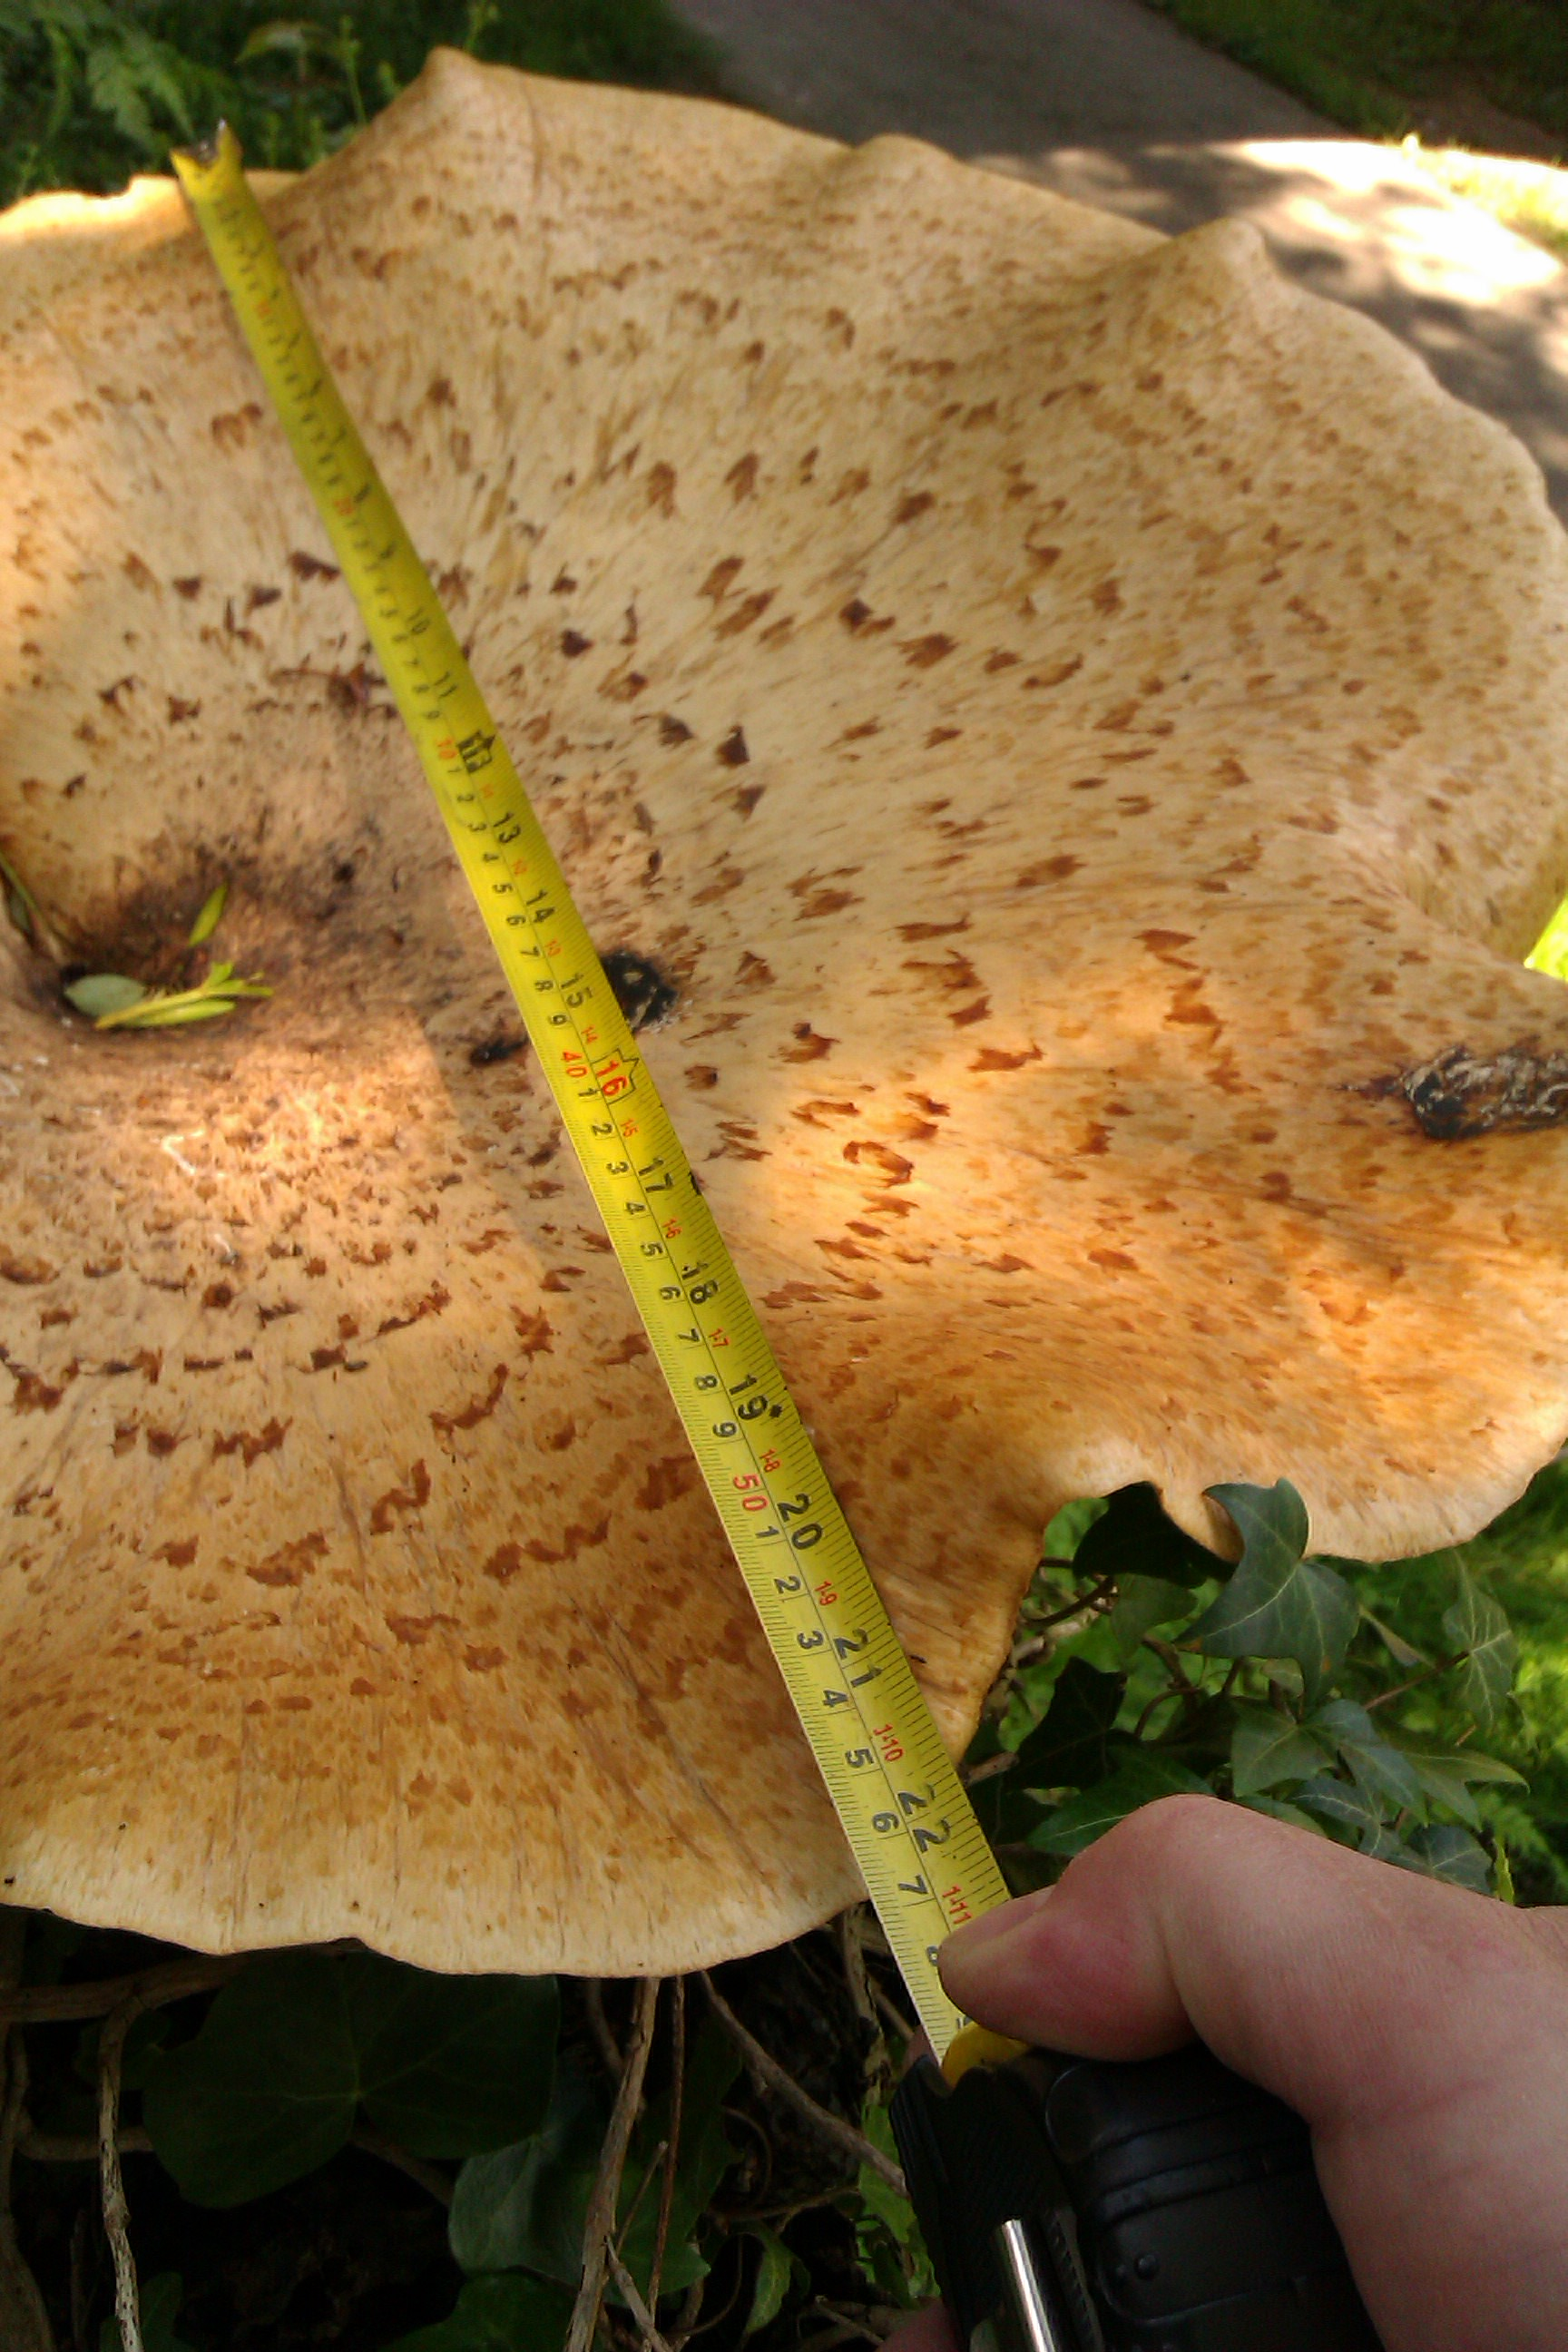 Edible Mushroom Identification Pictures http://www.wildmushroomsonline.co.uk/forager-details/OTQ5/1